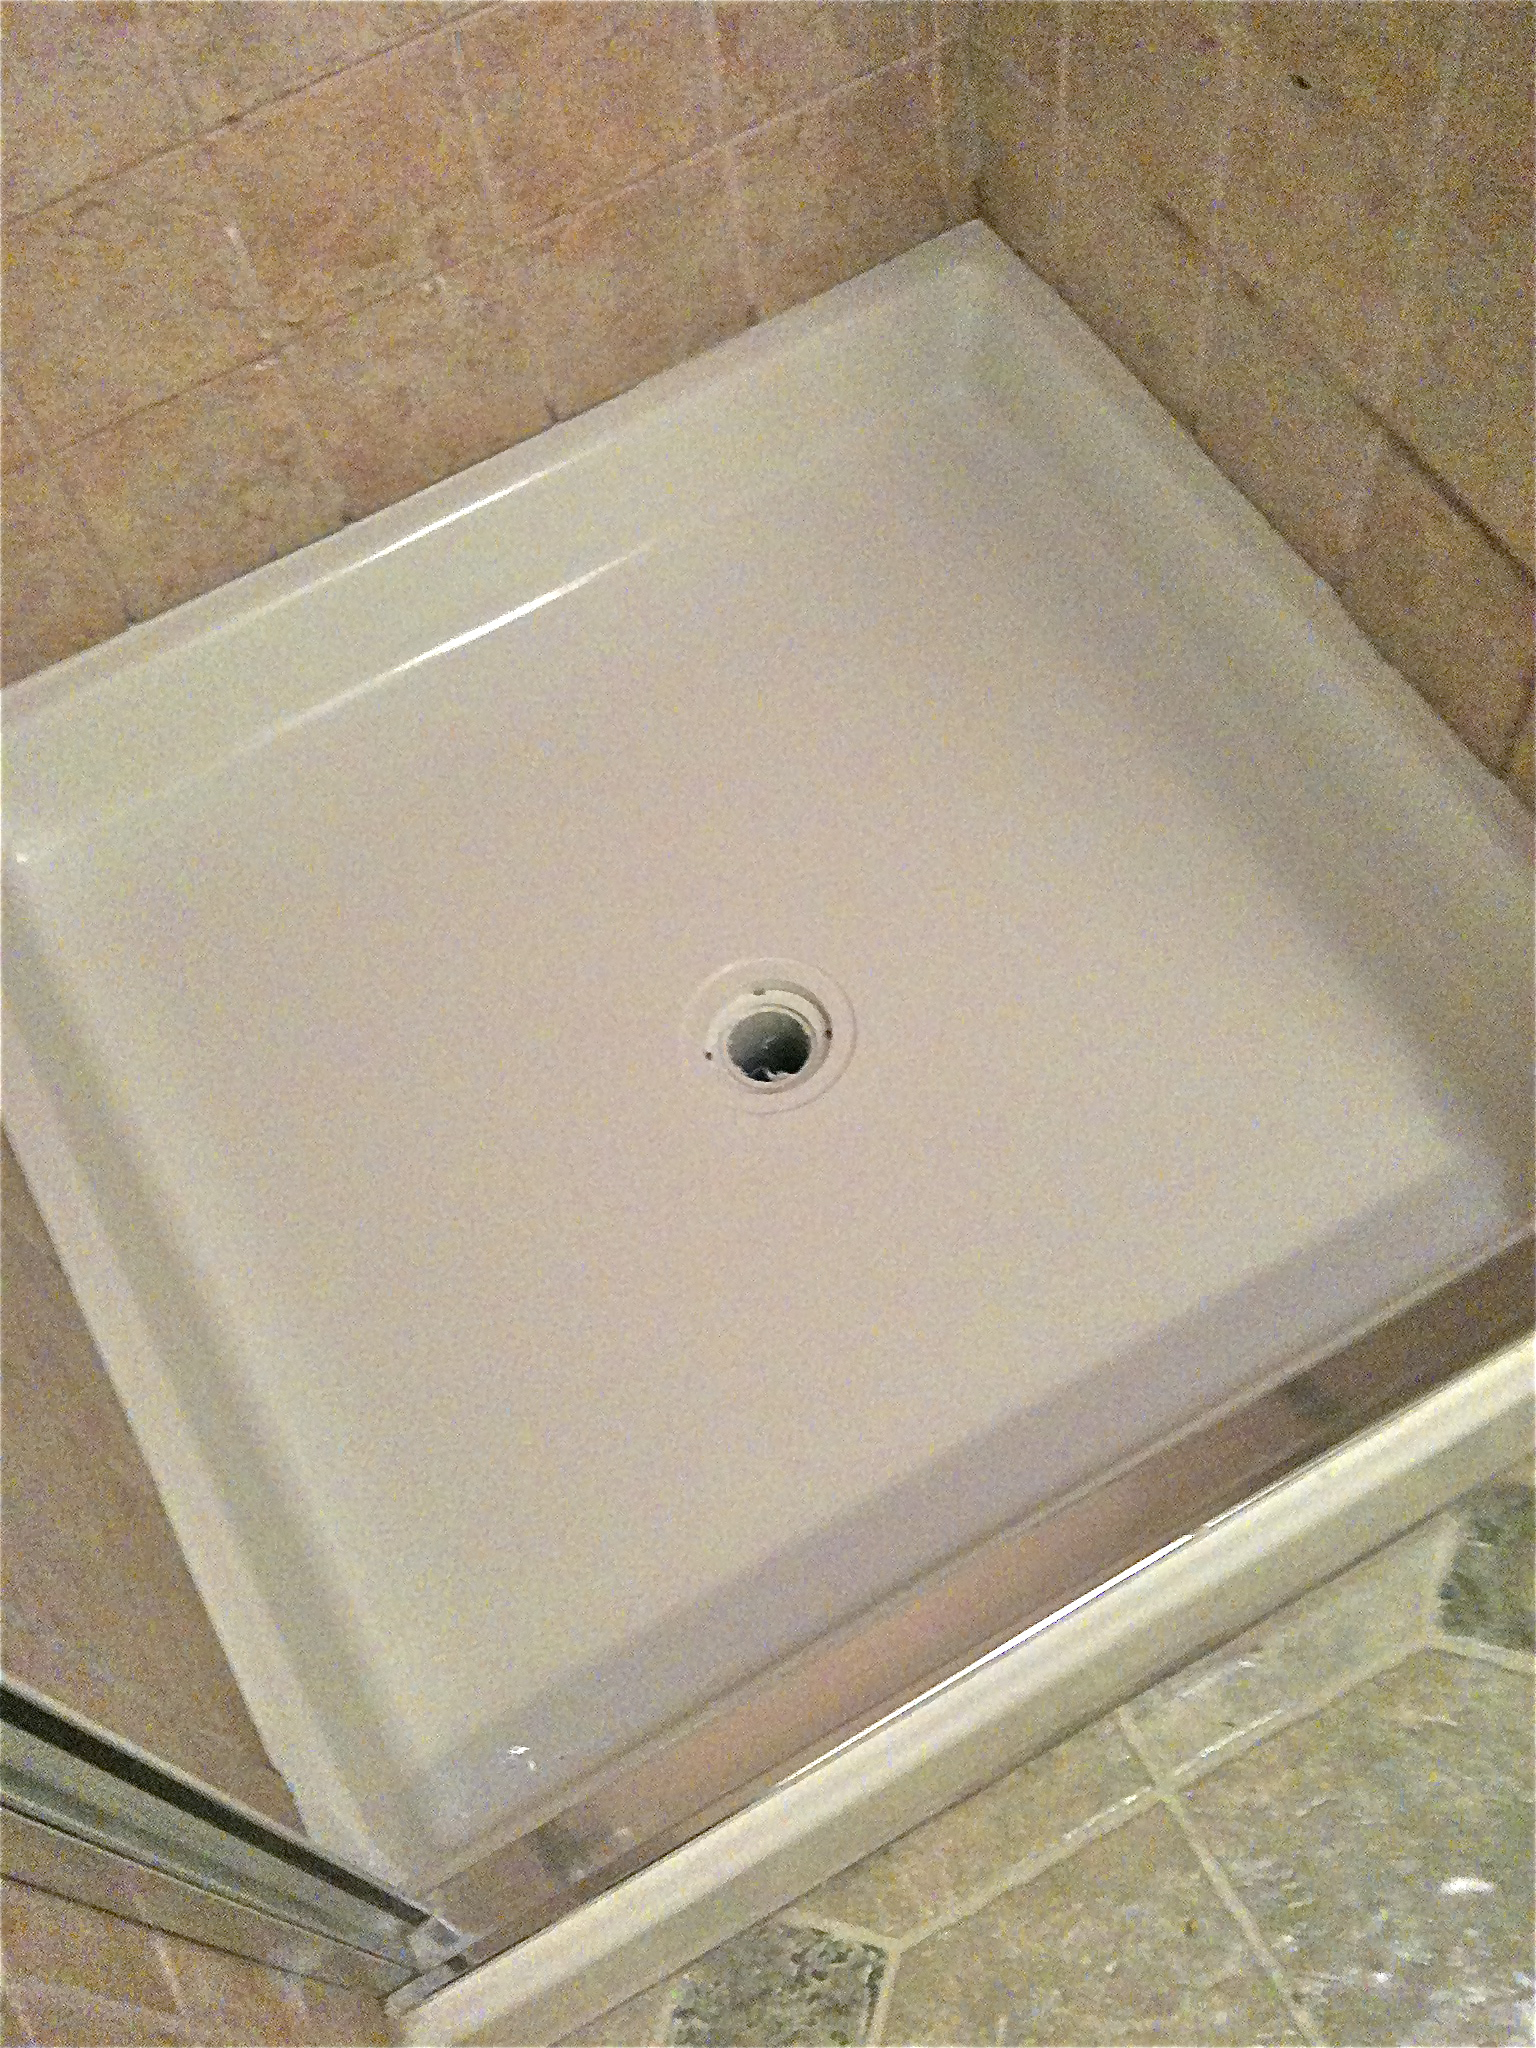 Bathroom Updates Archives - Colorado Tub Repair - Part 2